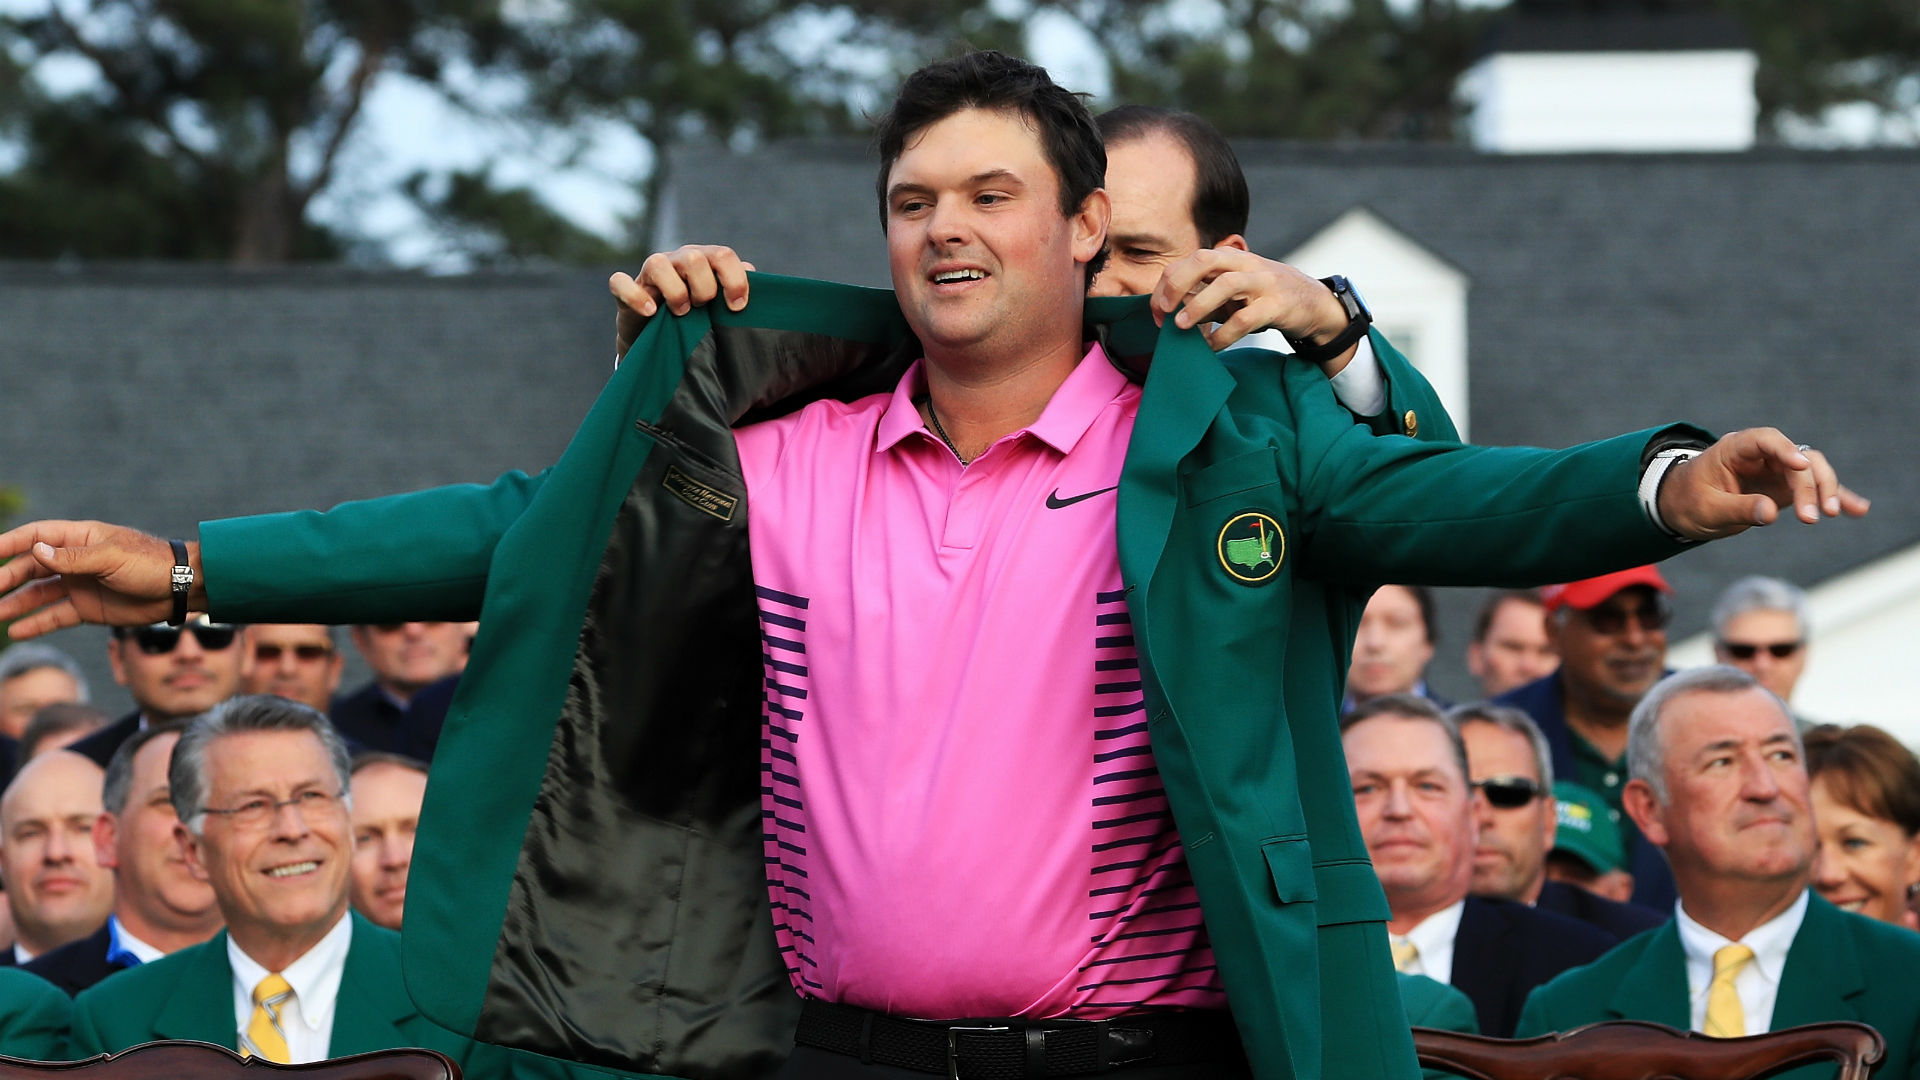 Masters 2019: Green Jacket Ceremony cancelled due to weather concerns at Augusta